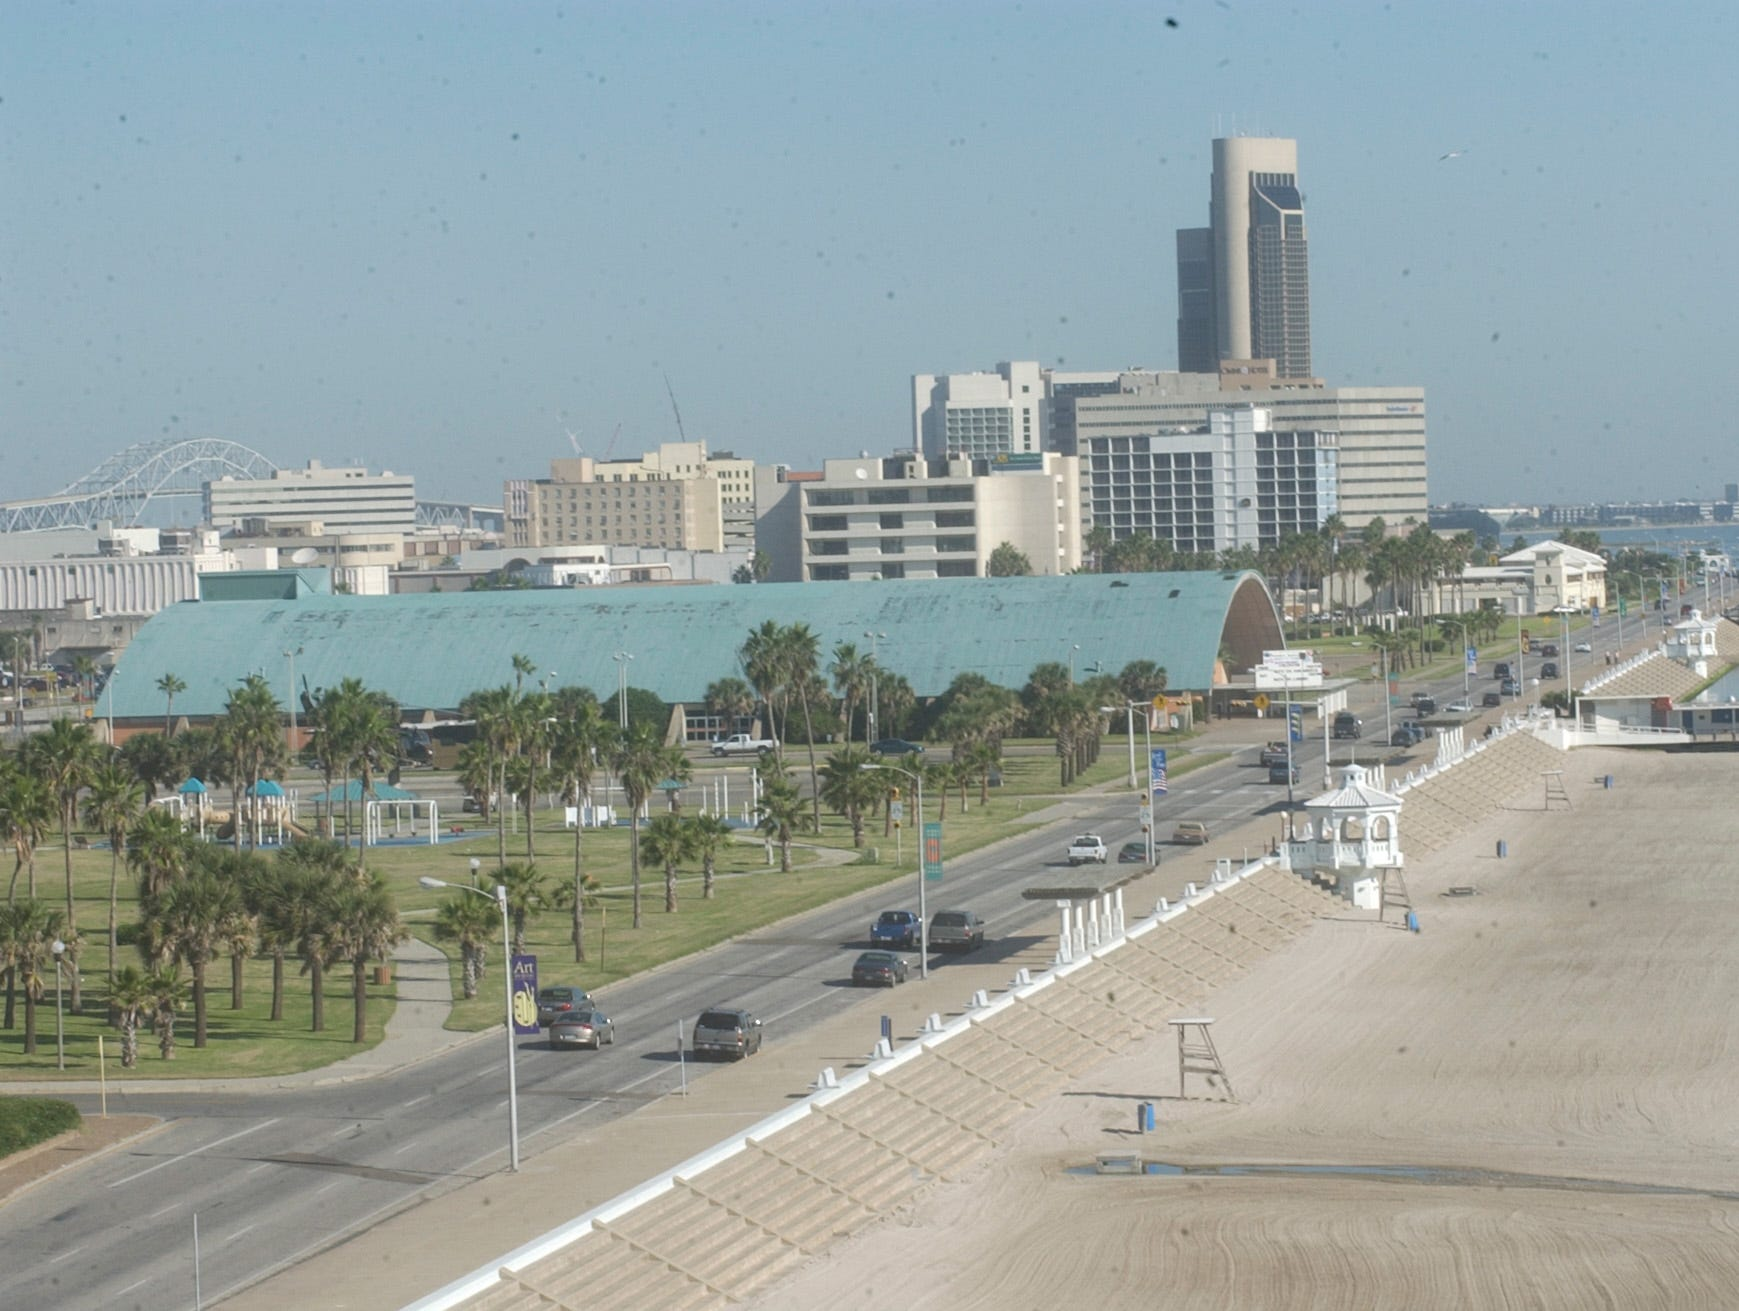 McGee Beach and the bayfront in downtown Corpus Christi in 2003.